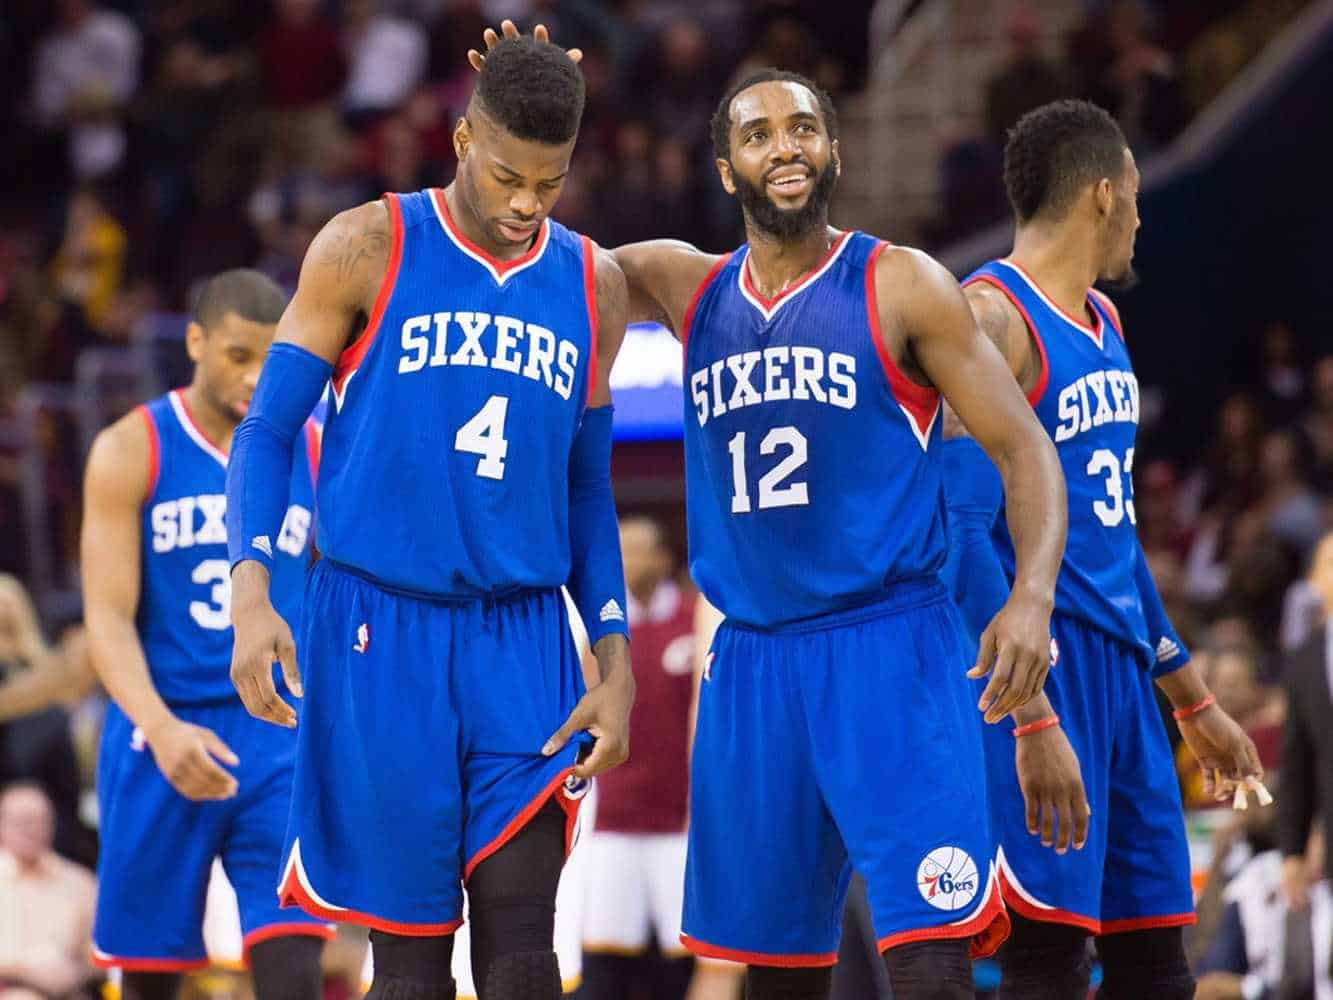 Philadelphia 76ers v New York Knicks - NBA